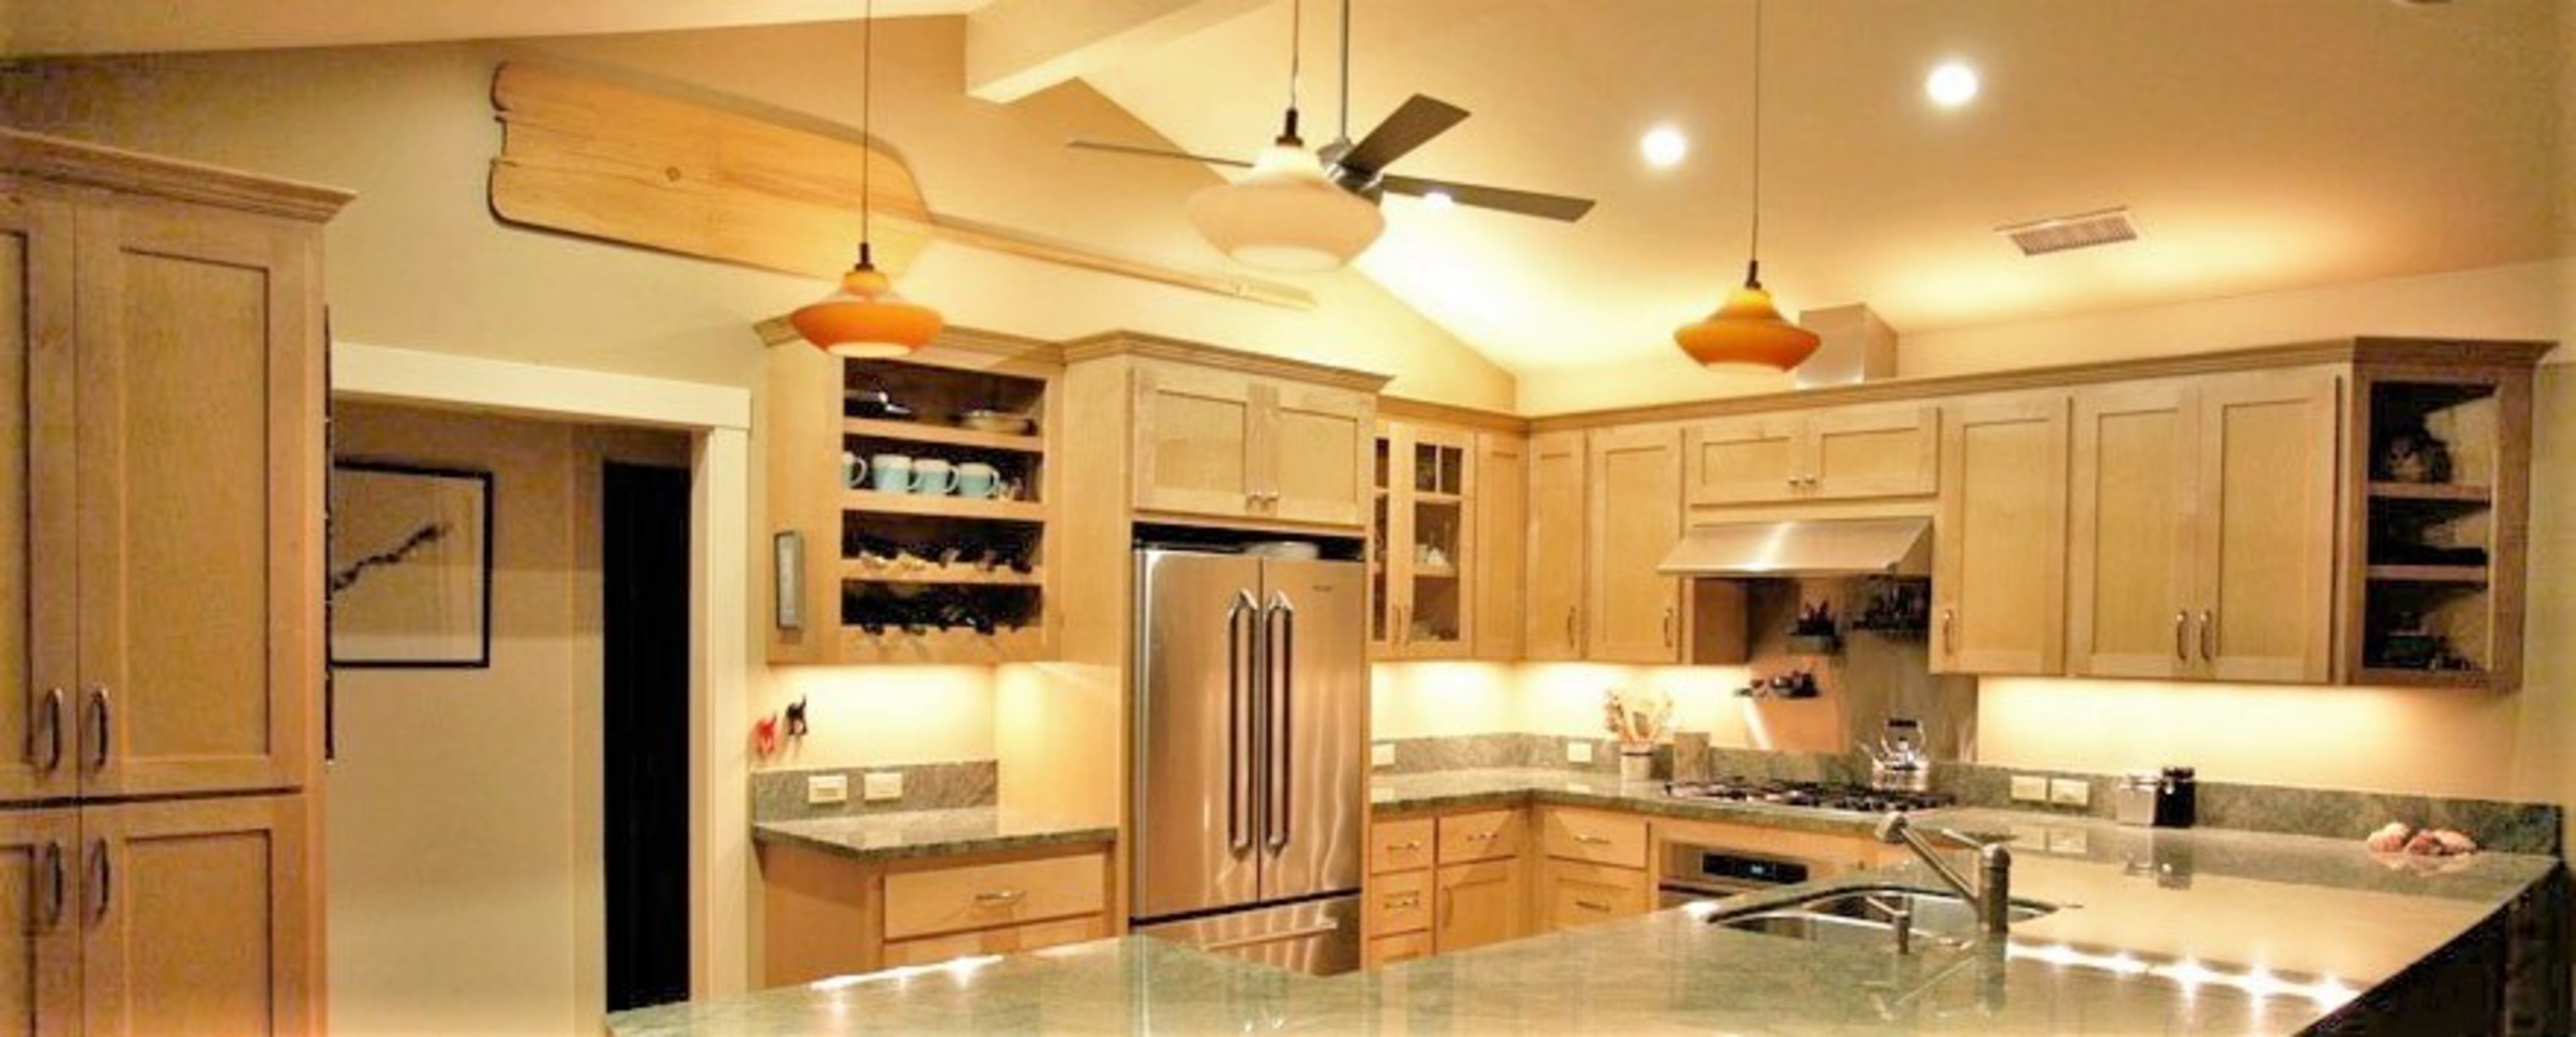 Thumb kitchen shaker style maple light color recessed panel scallop wine rack angled bookcase shelves standard & Affordable Custom Cabinets - Showroom azcodes.com